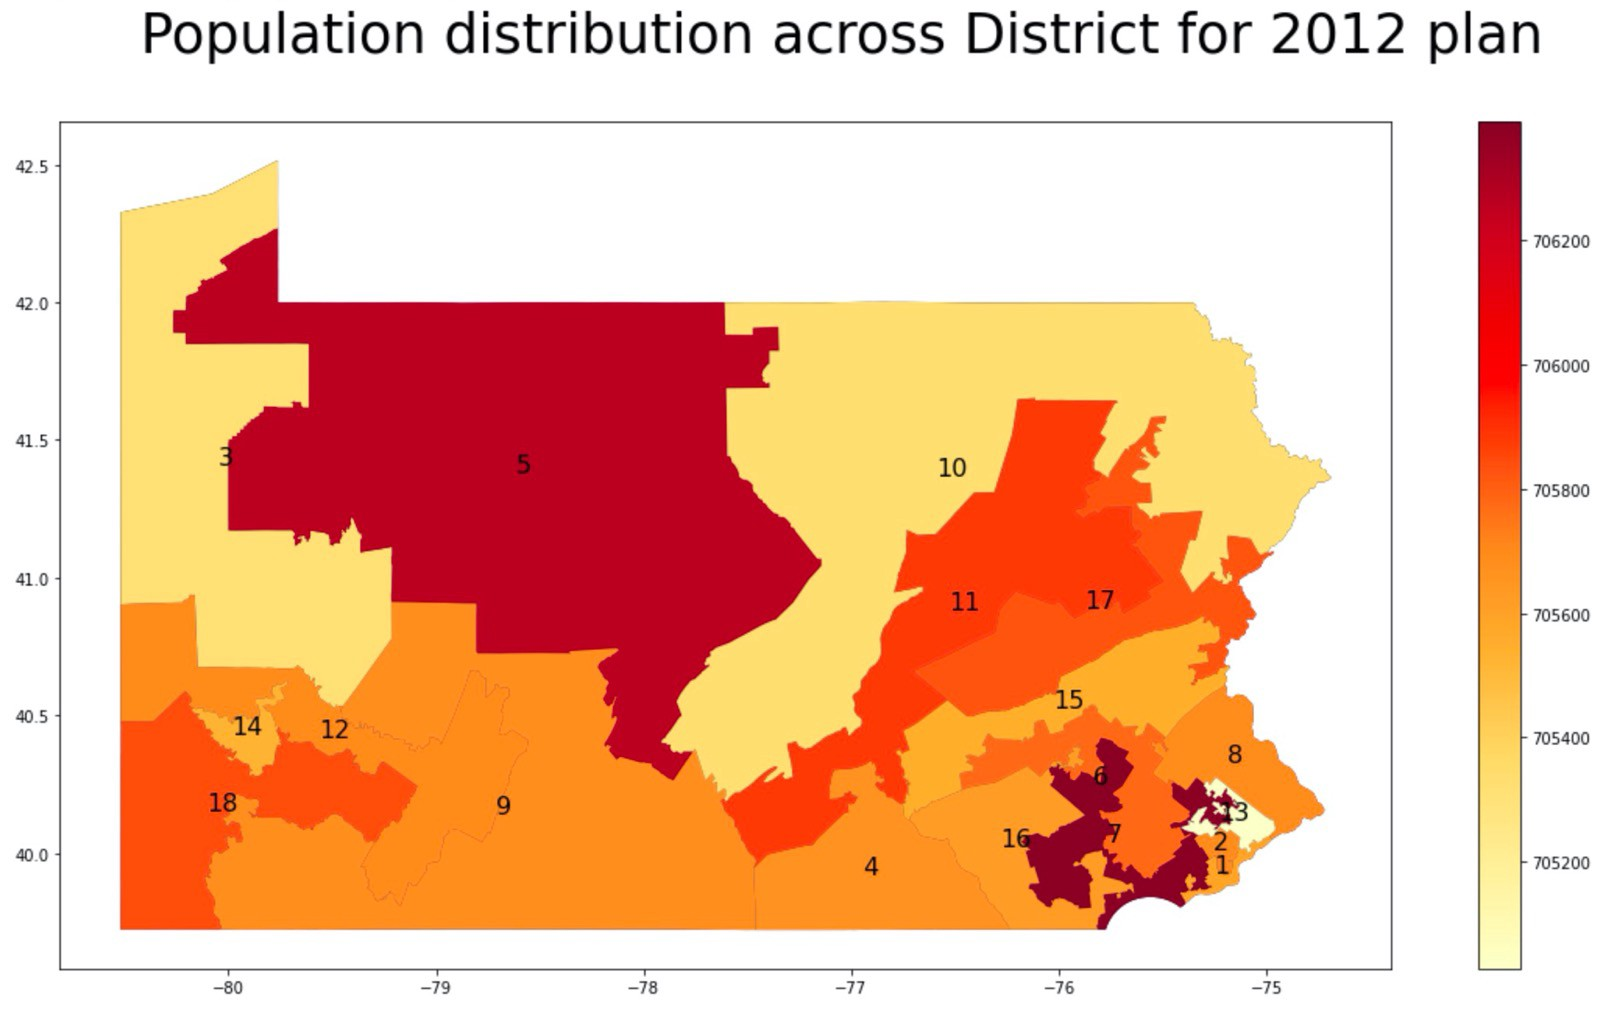 this image shows how population is unevenly distributed across the districts in the 2012 plan.